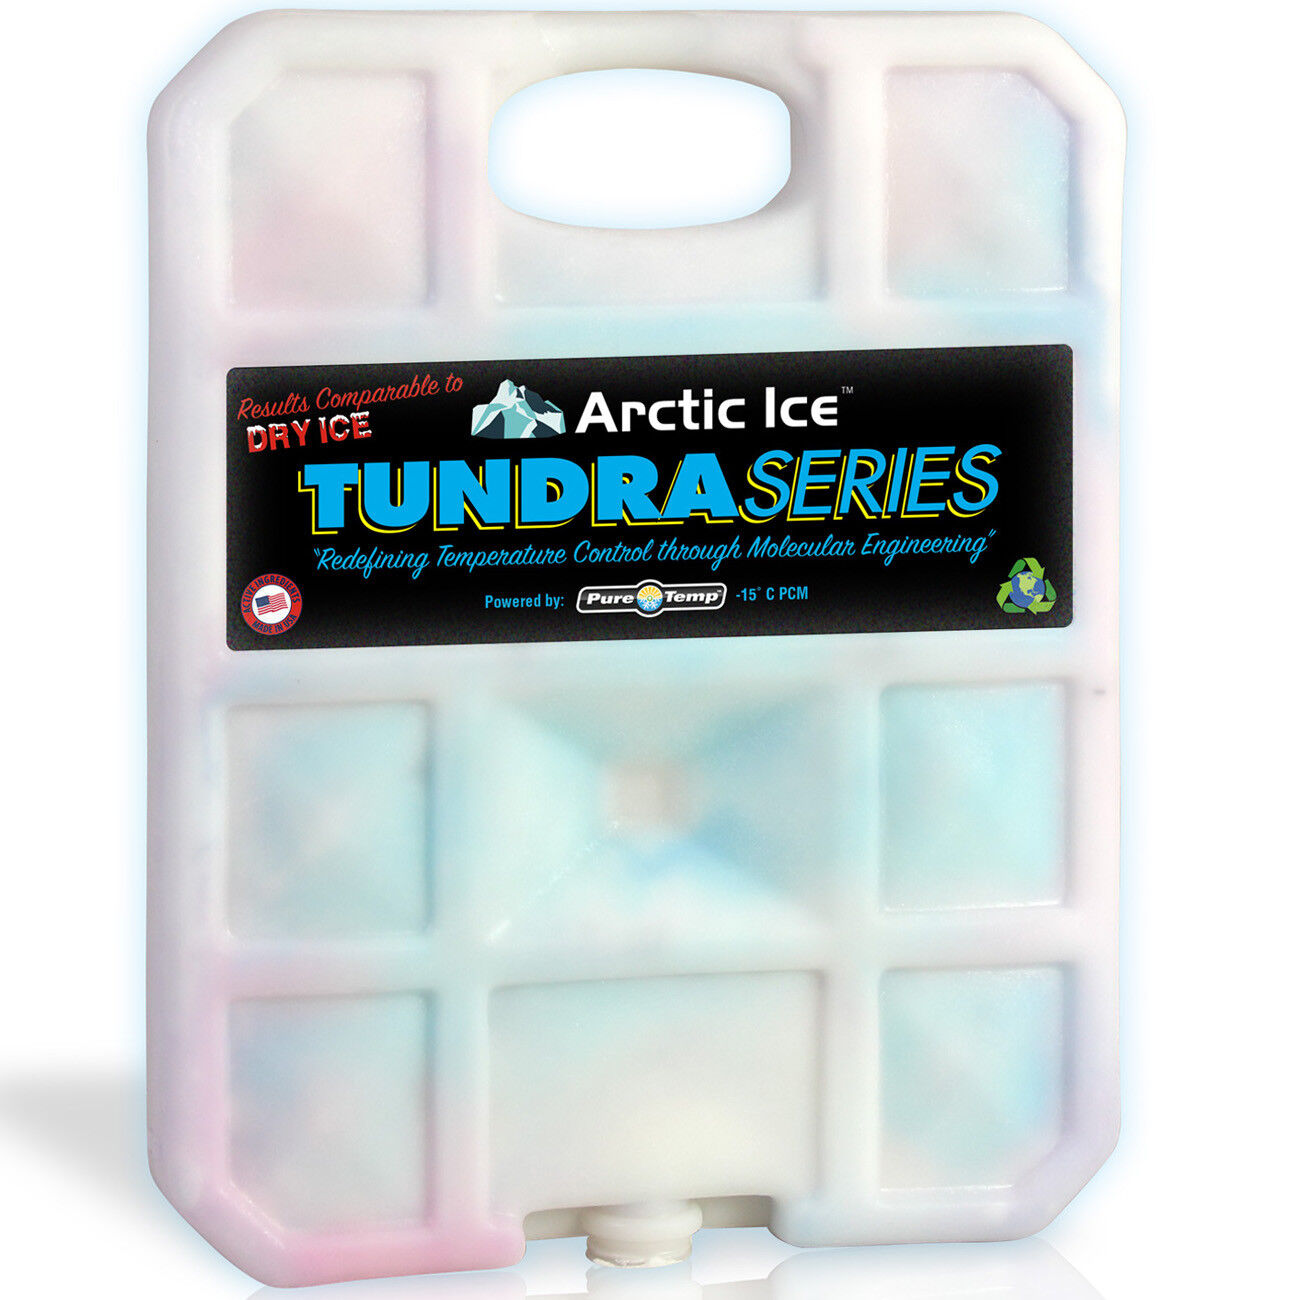 Arctic Ice 83662301207 5lb Tundra Series Reusable Cooler